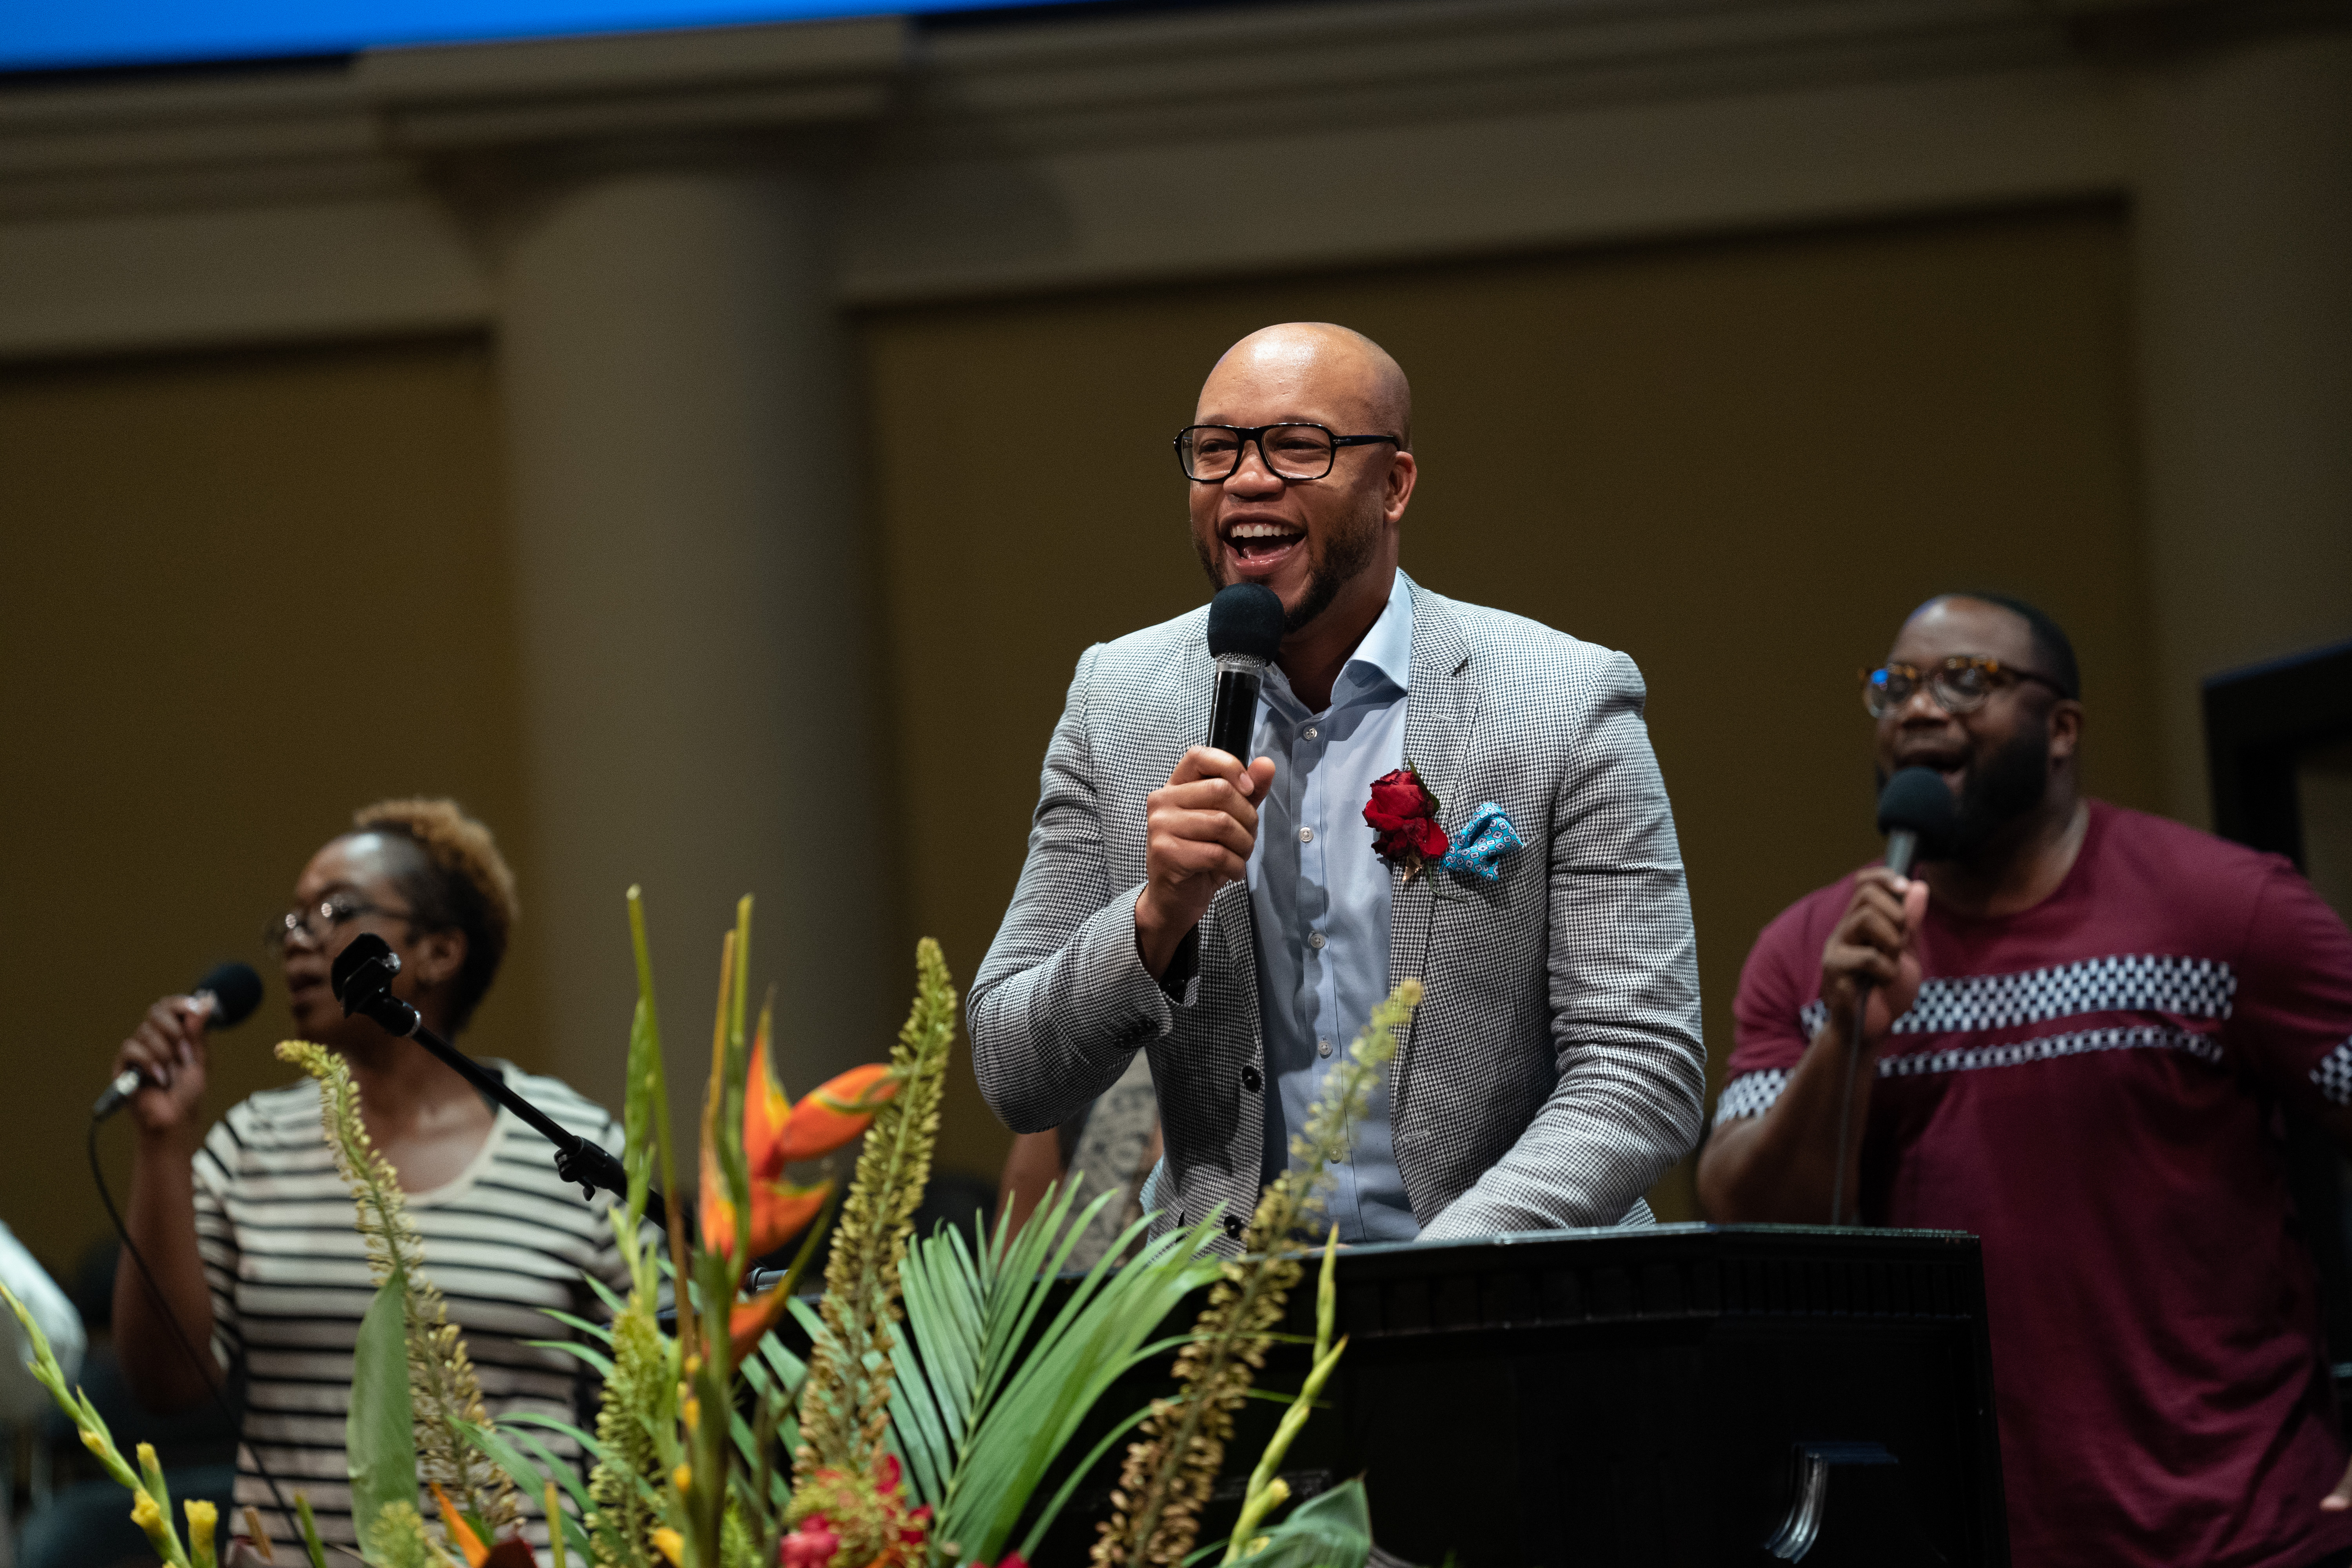 Pastor Damian Chandler of the Capitol City church leads out in praise and worship at Urban Camp Meeting.